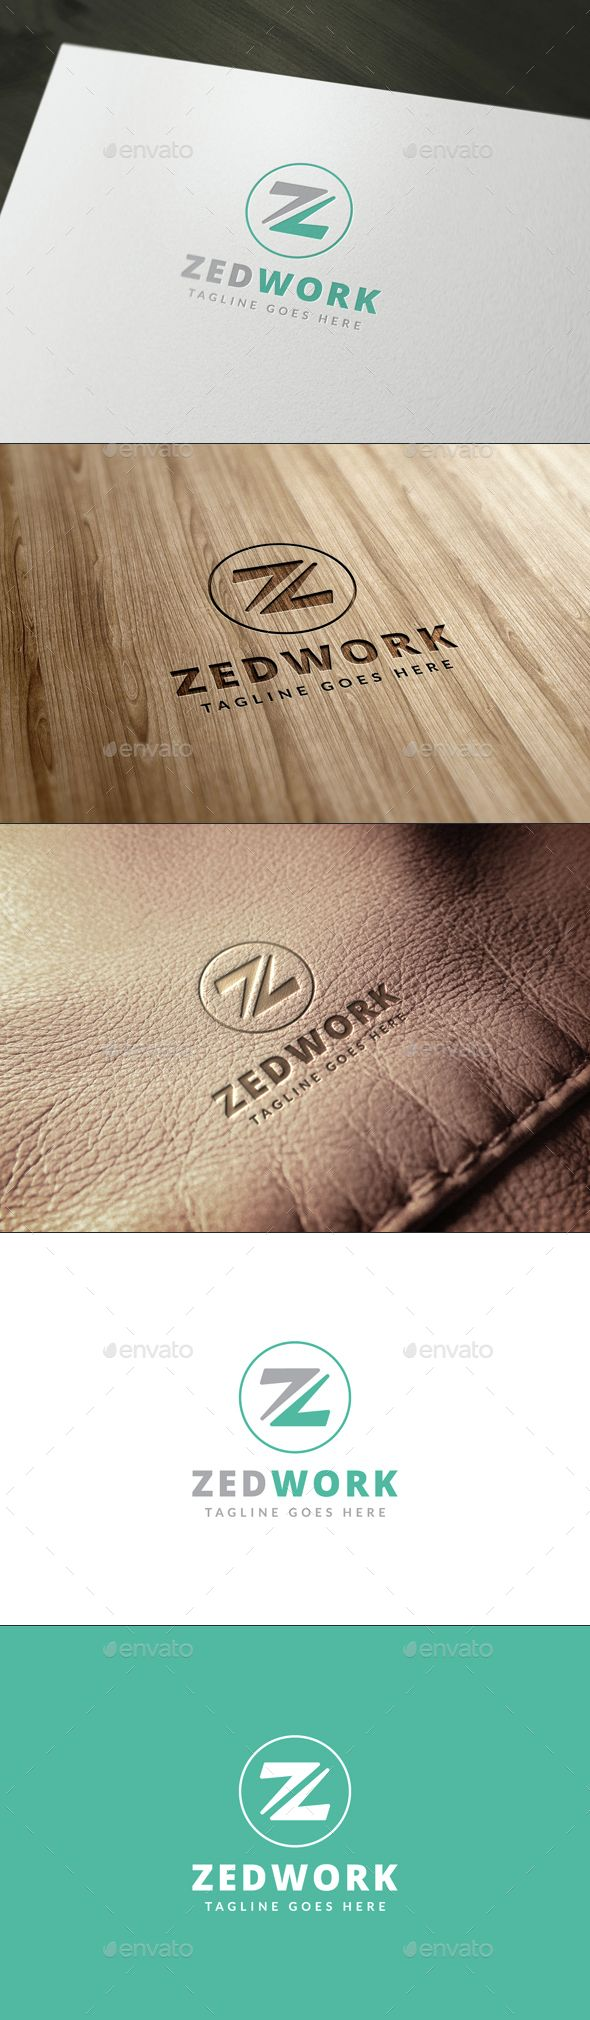 """Z"" Letter Logo Template — Photoshop PSD #simple #minimal • Available here → https://graphicriver.net/item/z-letter-logo-template/6514396?ref=pxcr"